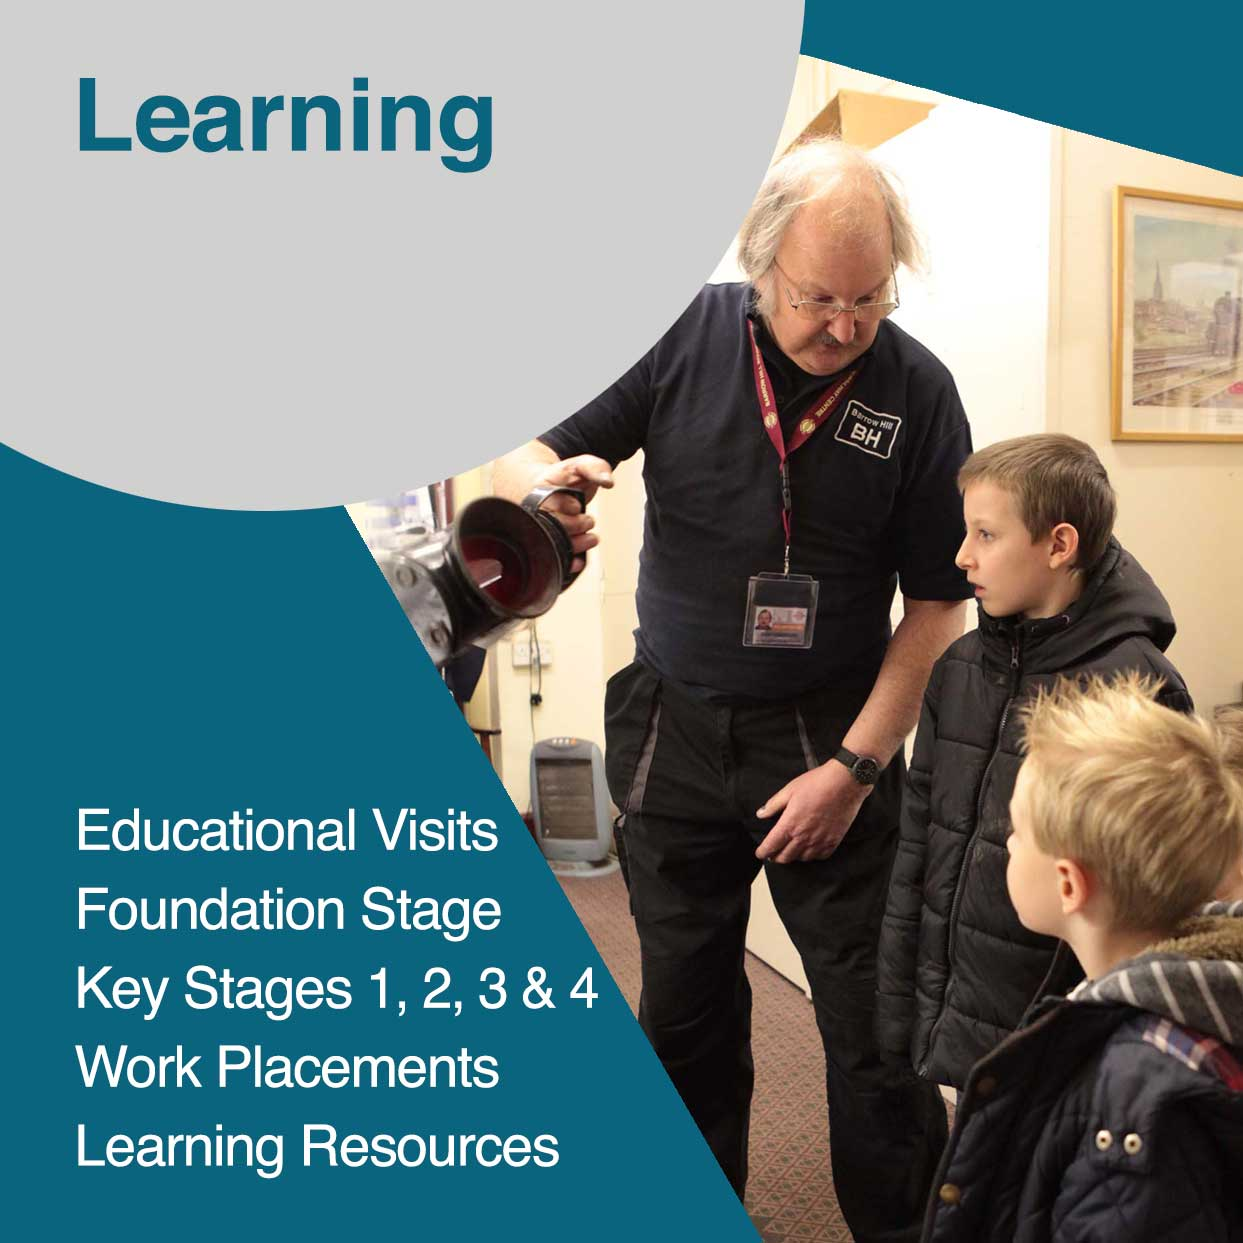 Educational School outings for Key Stages 3 and 4 at Barrow Hill Roundhouse and Railway Museum